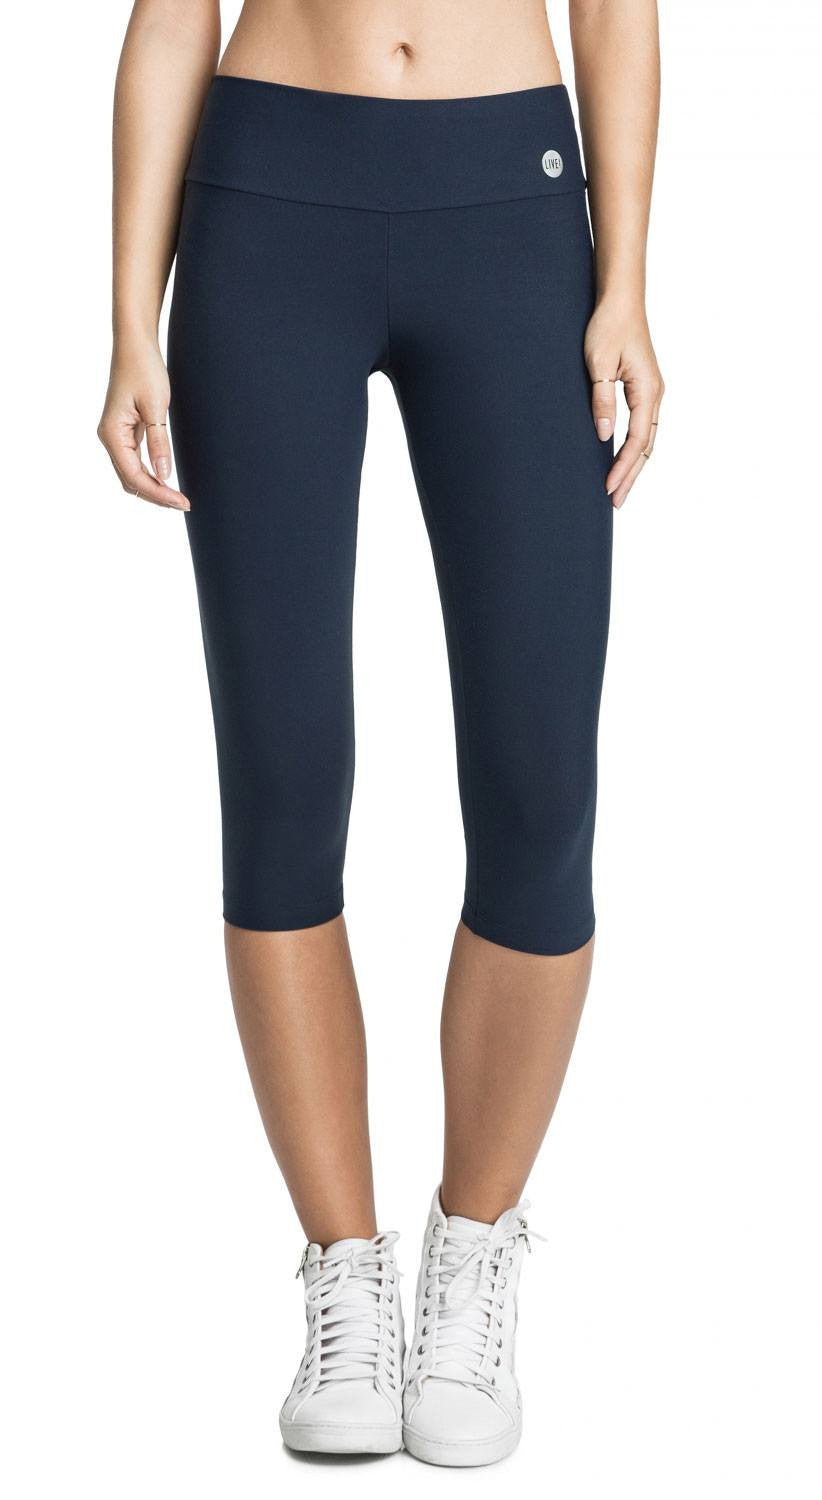 Basic Training Compression Capri - Navy